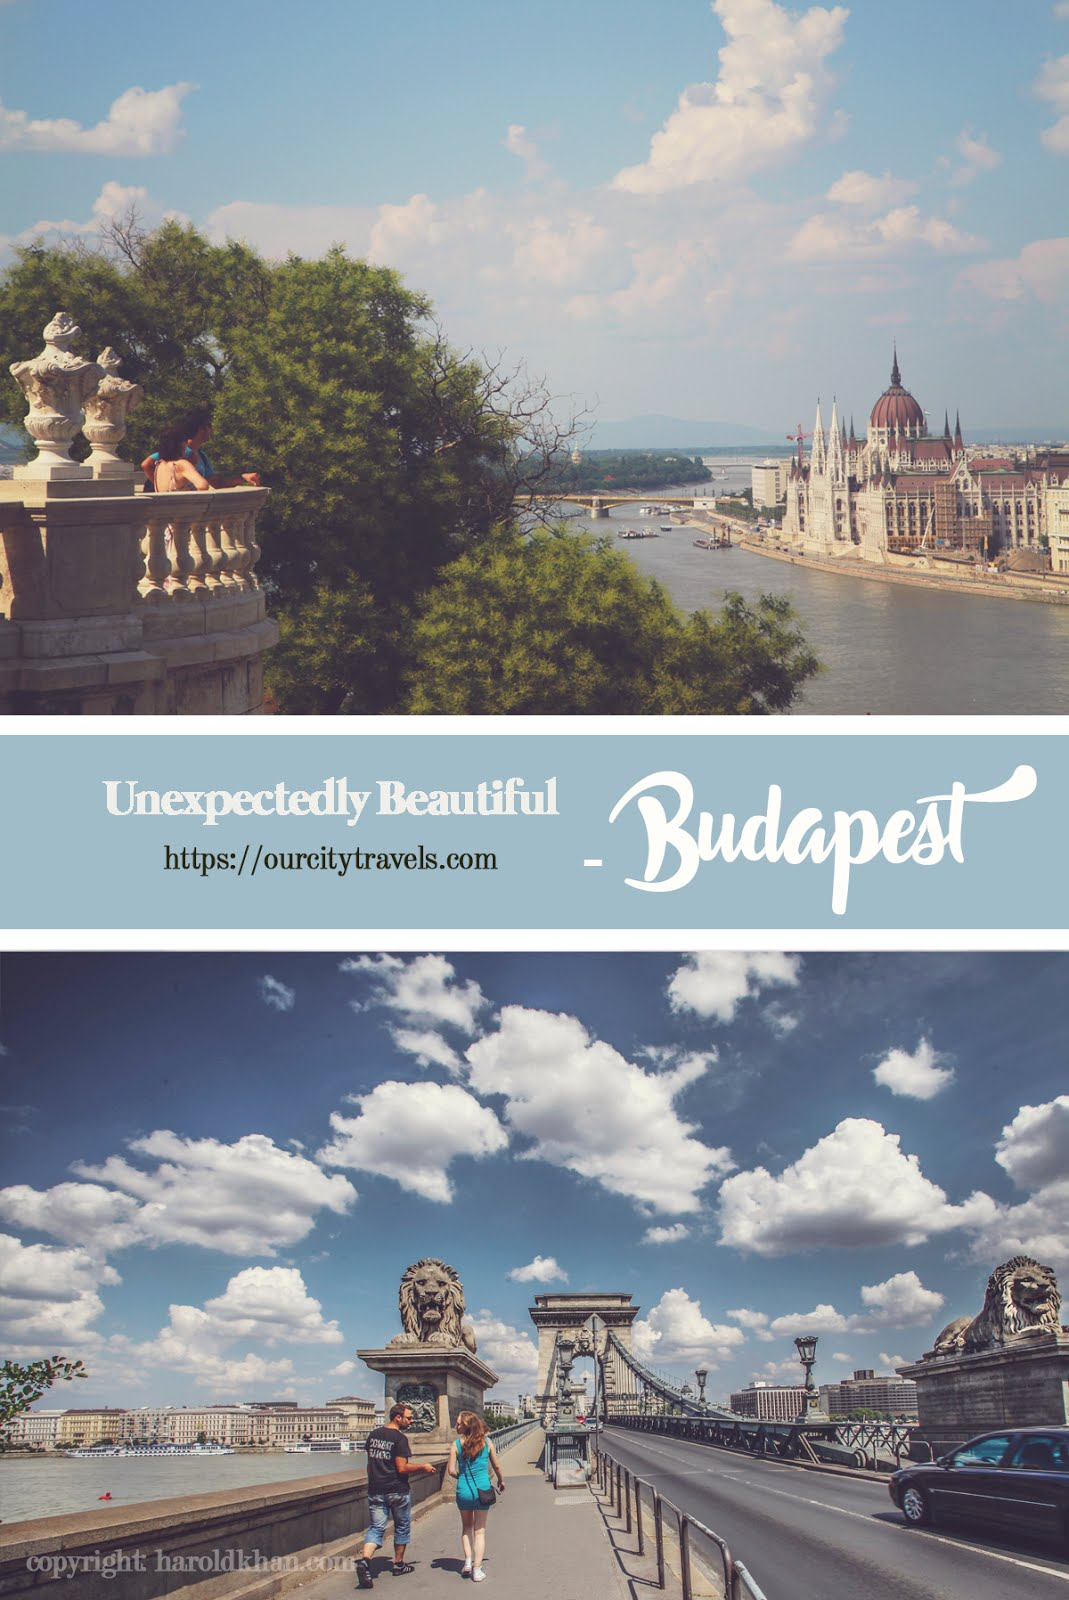 Unexpectedly clean, picturesque and familiar...these are my first impressions of Budapest. The clean streets are so very much like Vienna - only wider, the shopping streets like Paris - only cleaner but, it is unique in its own in terms of charm. Walking around, we felt safe.